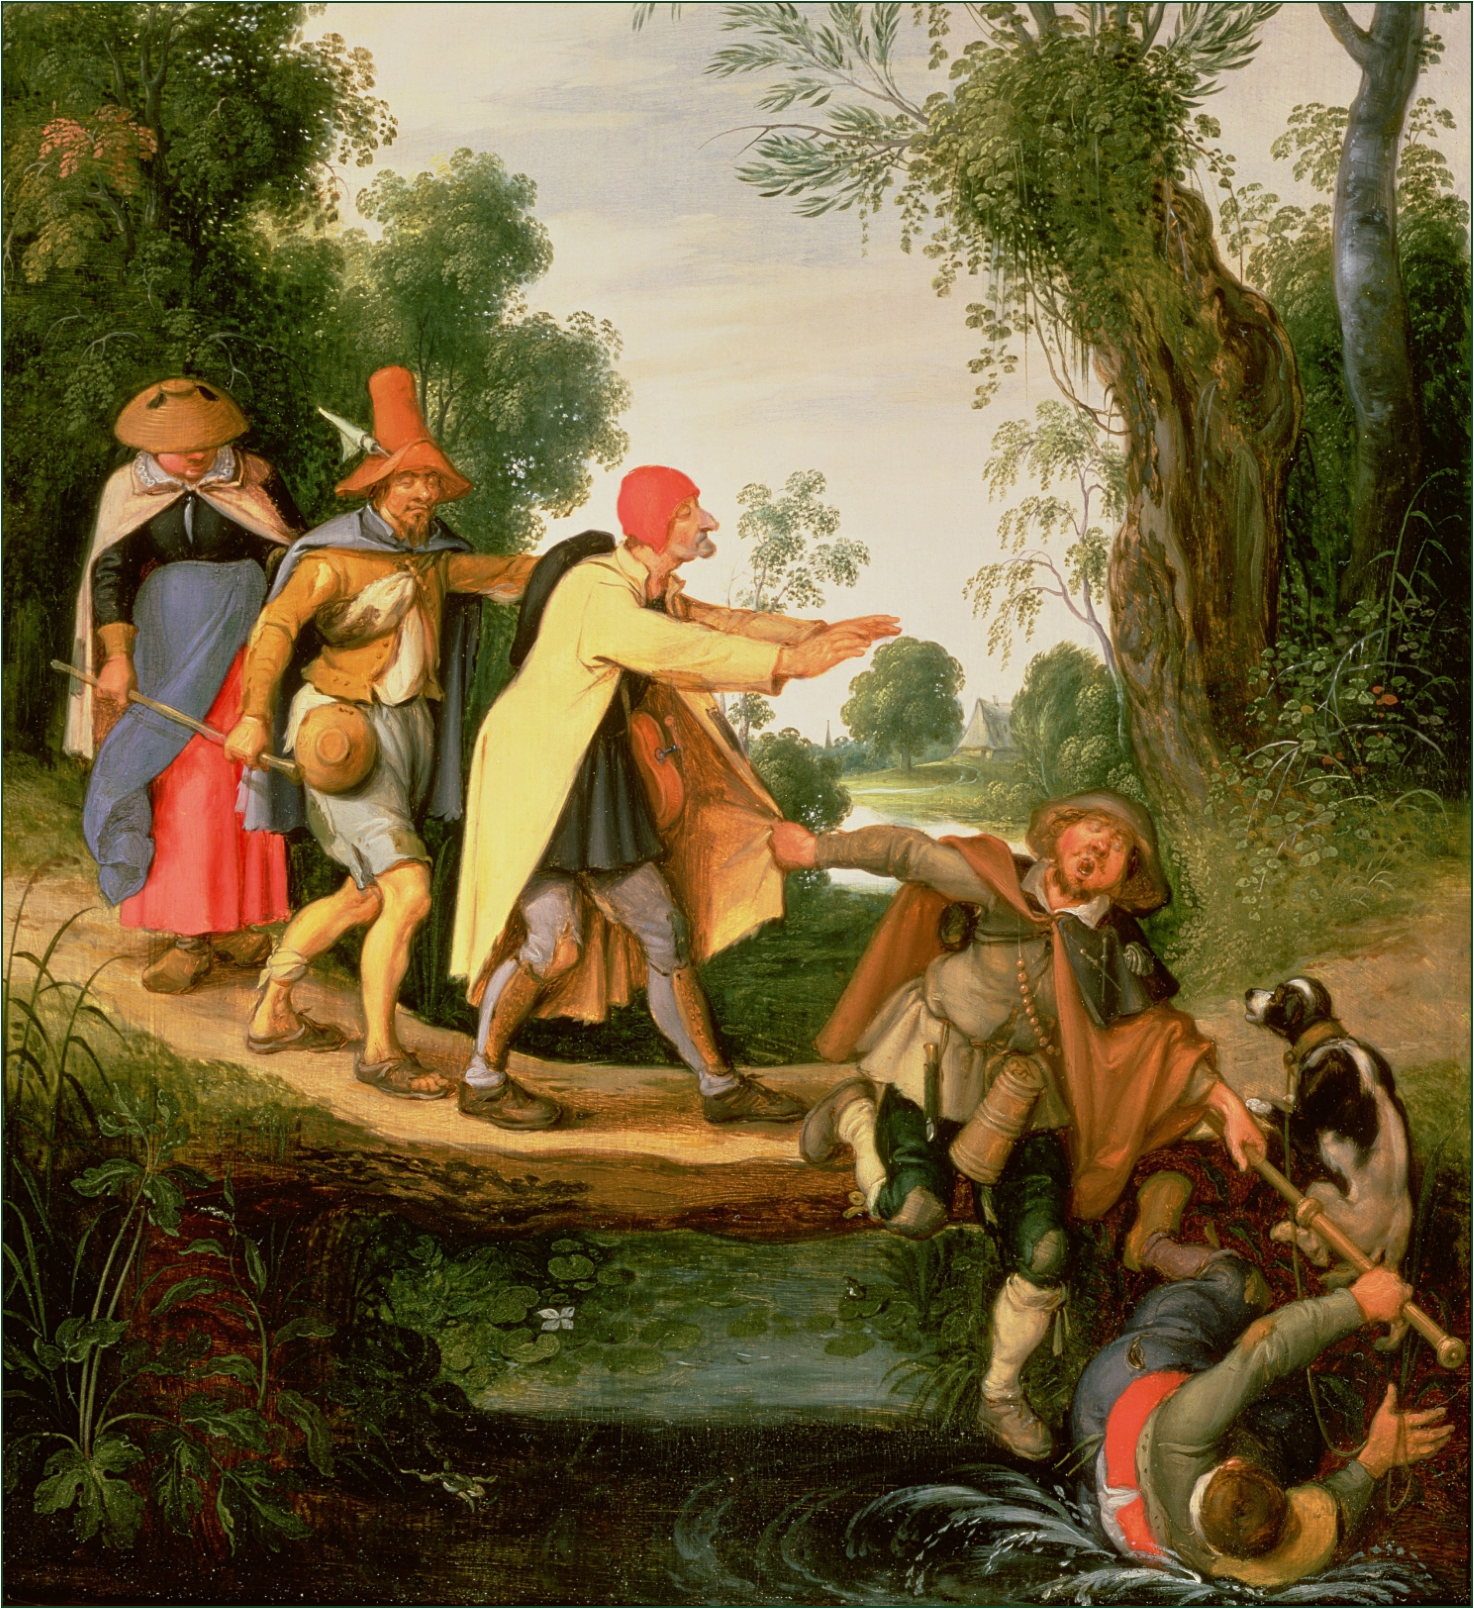 The cover image is  The Blind Leading the Blind  by Flemish Baroque painter Sebastiaen Vrancx (1573-1647)